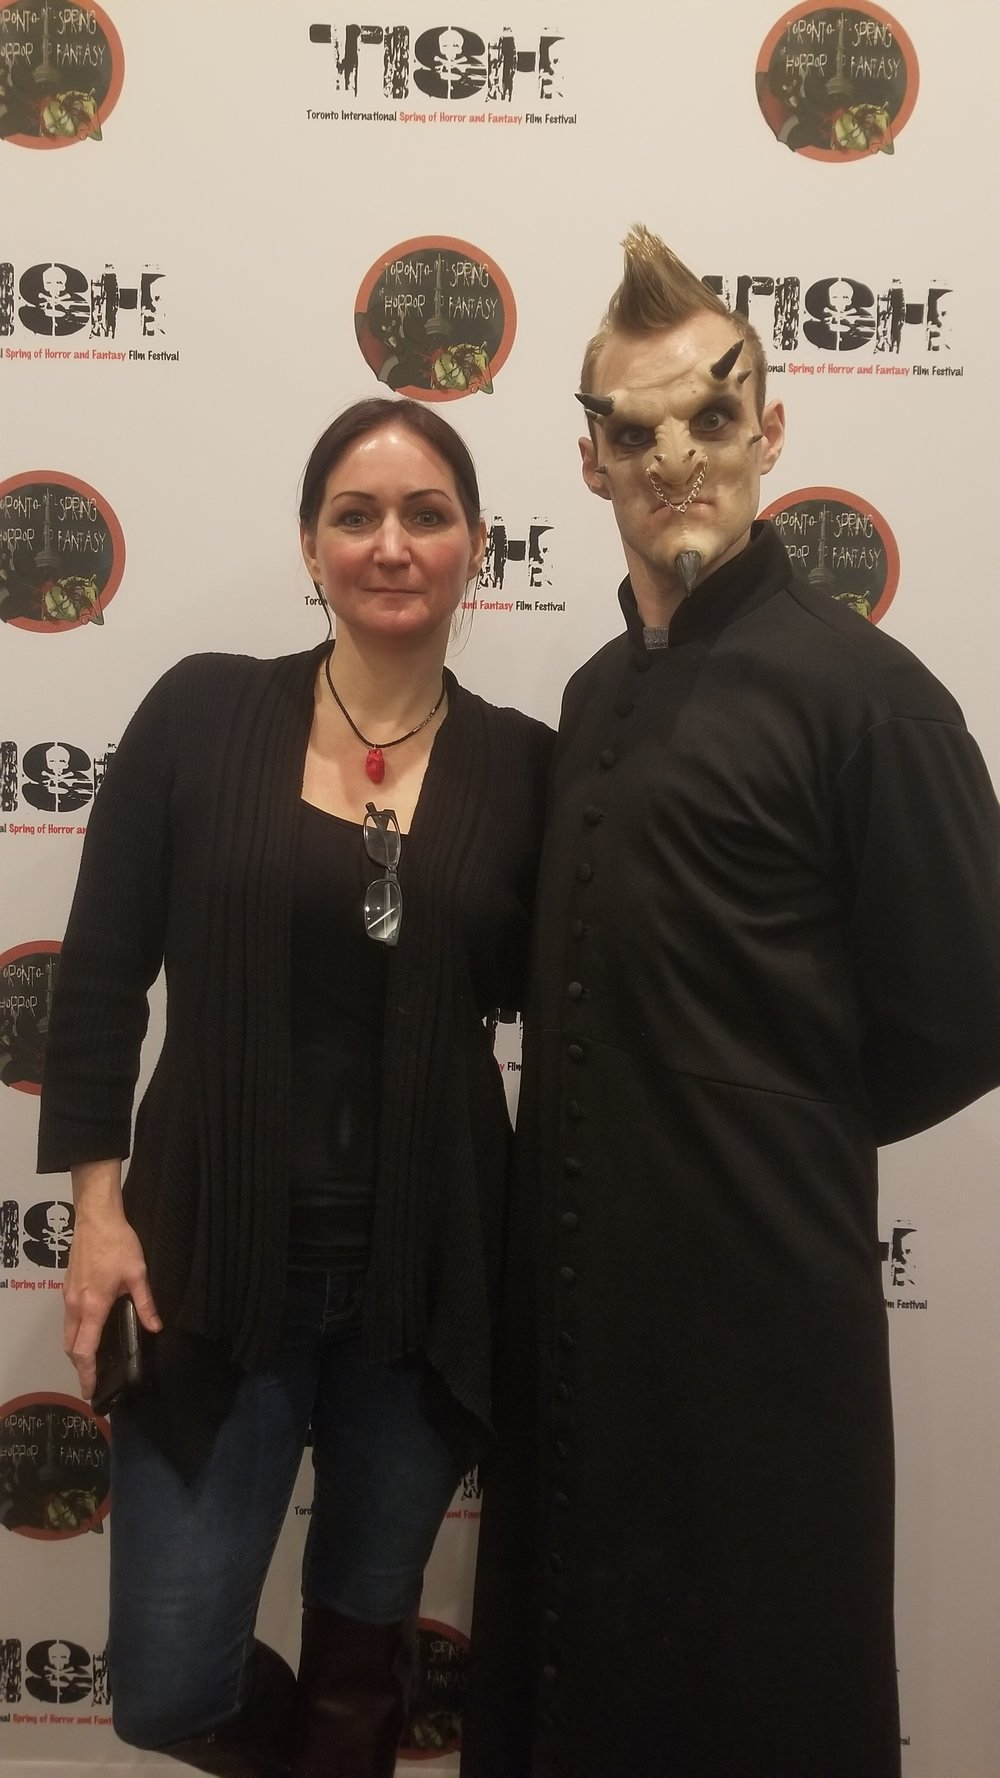 Make-Up demo at the Toronto International Spring of Horror & Fantasy Film Festival